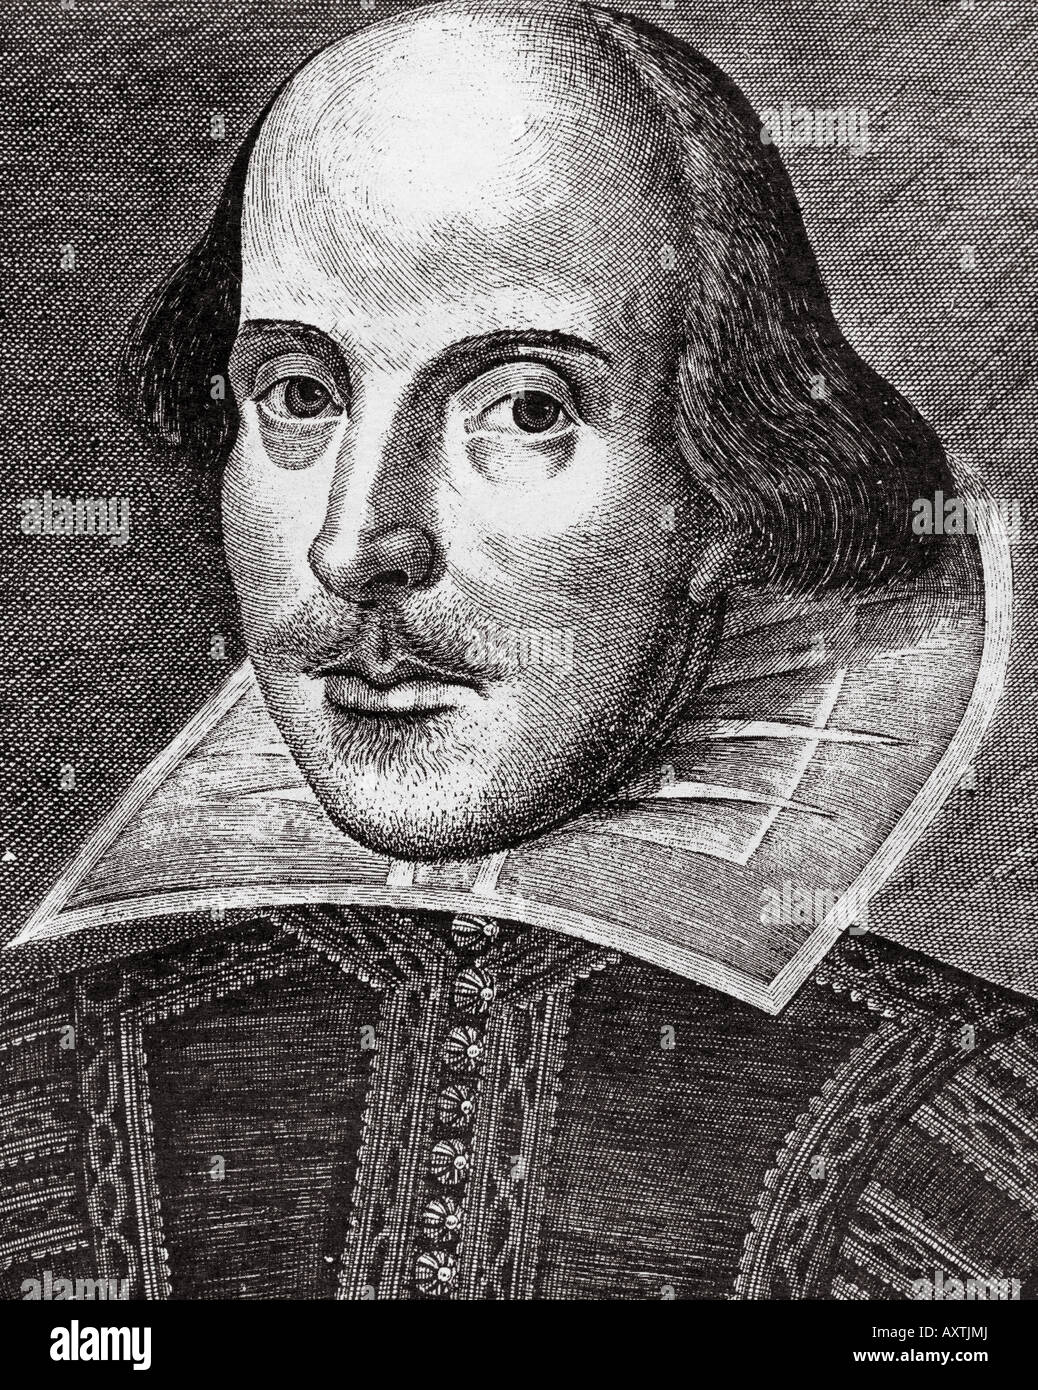 Portrait William Shakespeare Stockfotos & Portrait William ...